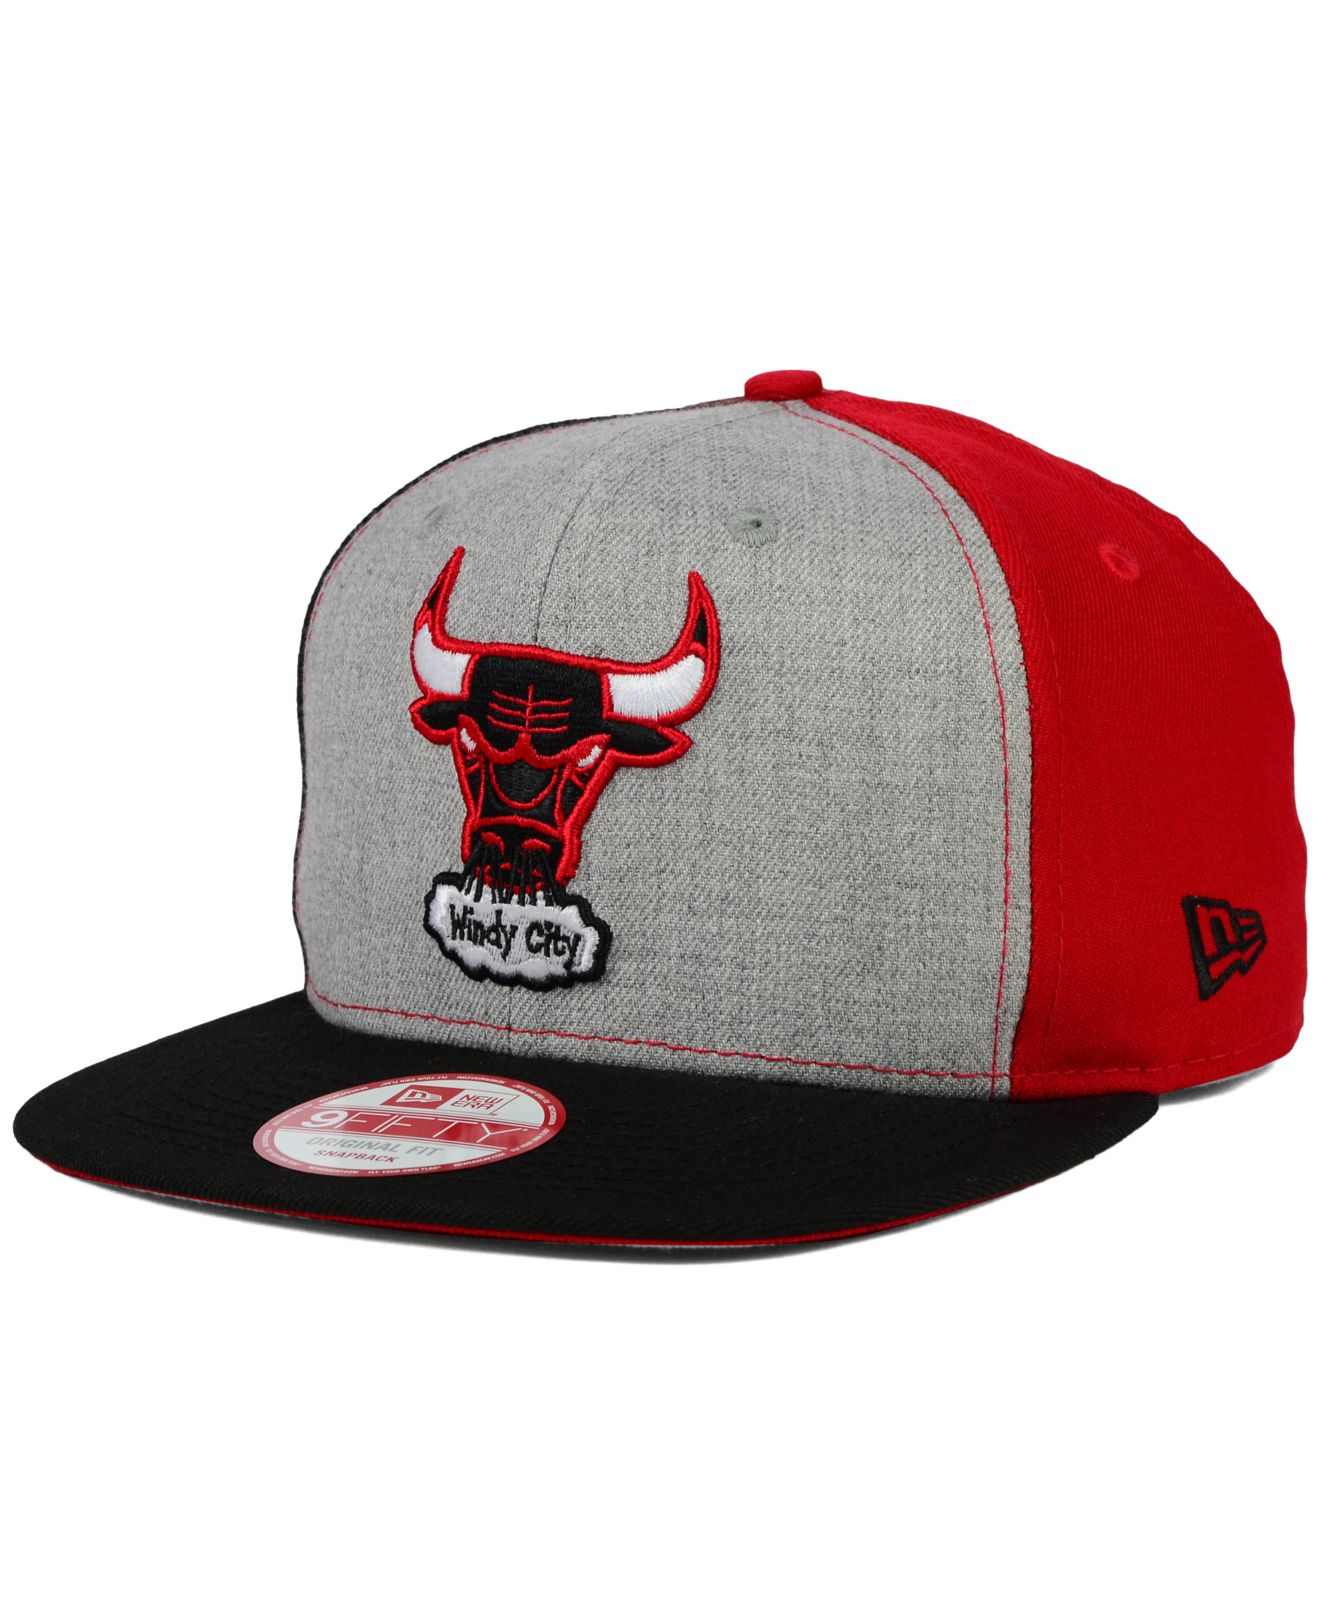 9e8c9f649f4 Lyst - KTZ Chicago Bulls Tri-top 9fifty Snapback Cap in Gray for Men